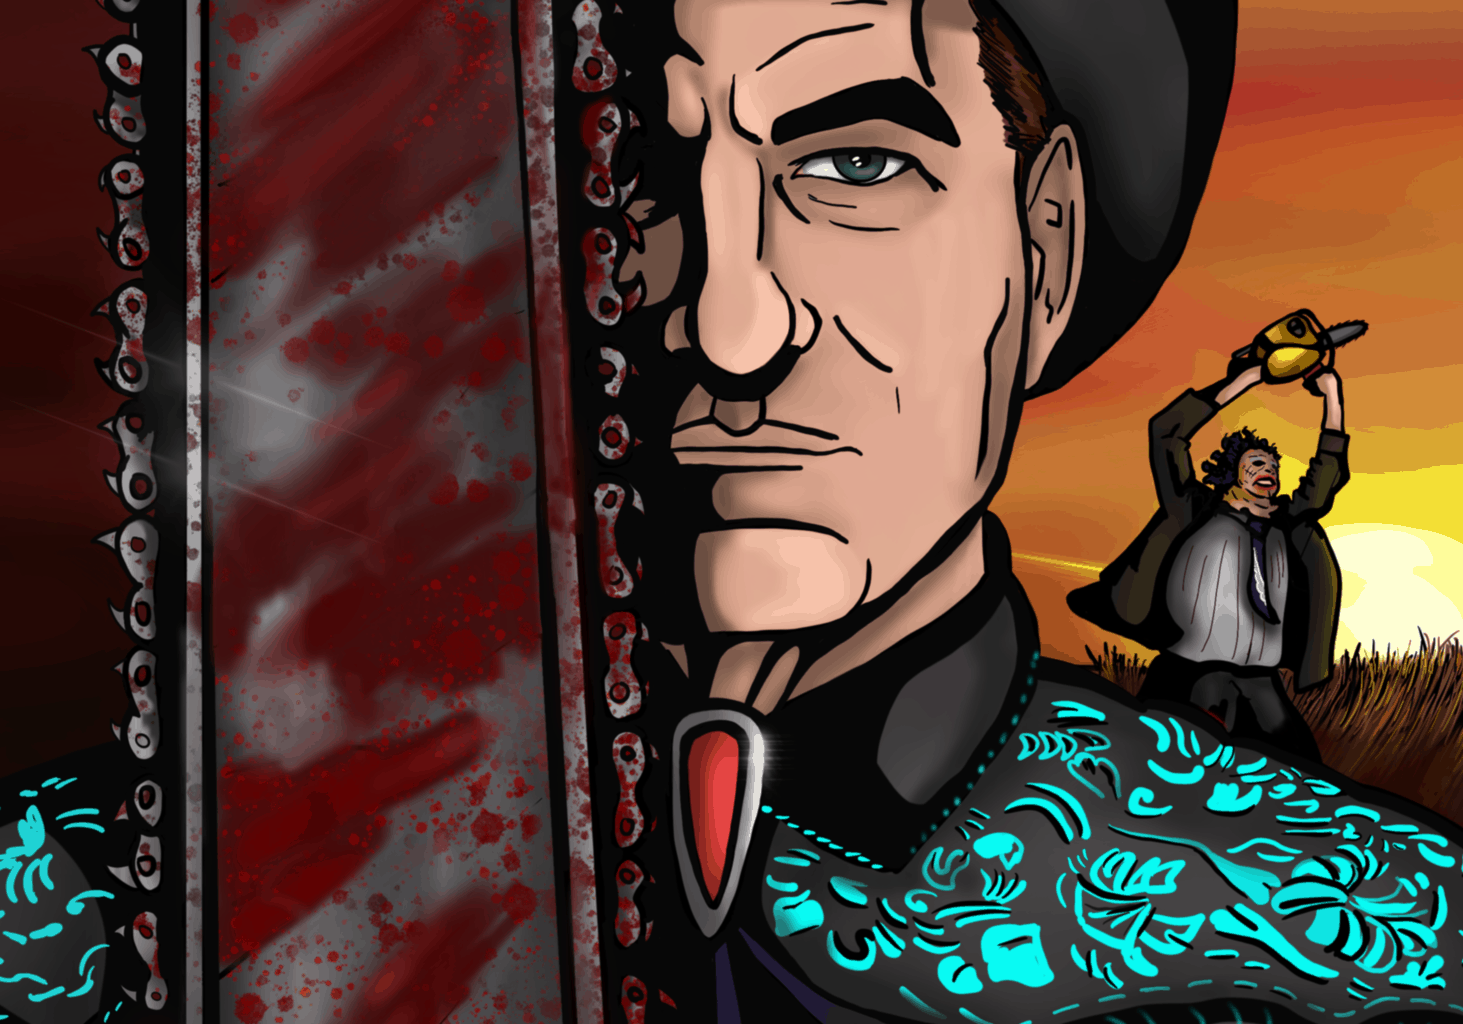 A color illustration of Joe Bob Briggs with Leatherface dancing in the distance